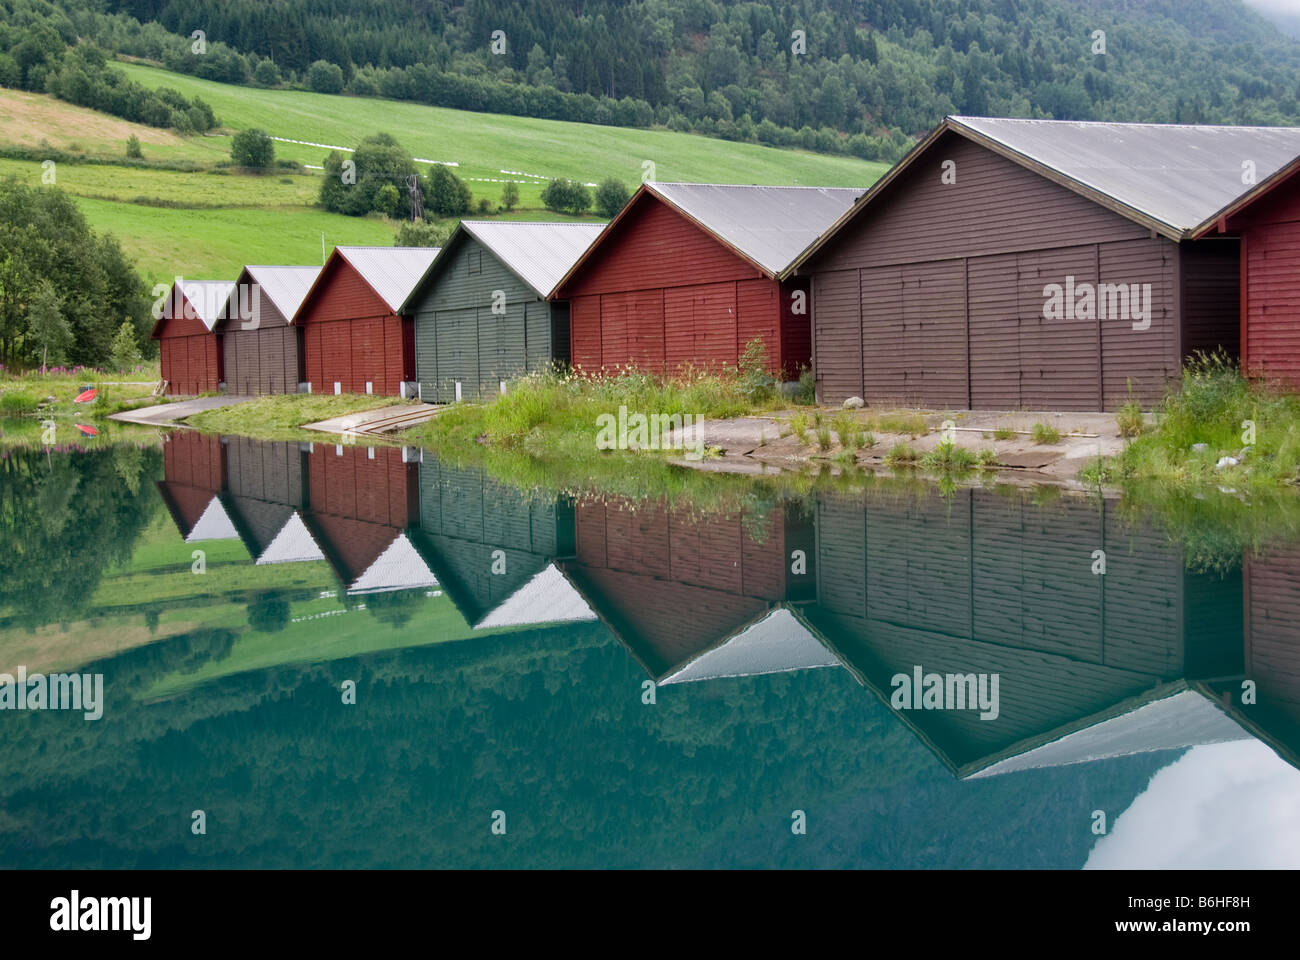 Olden, Norway - Stock Image